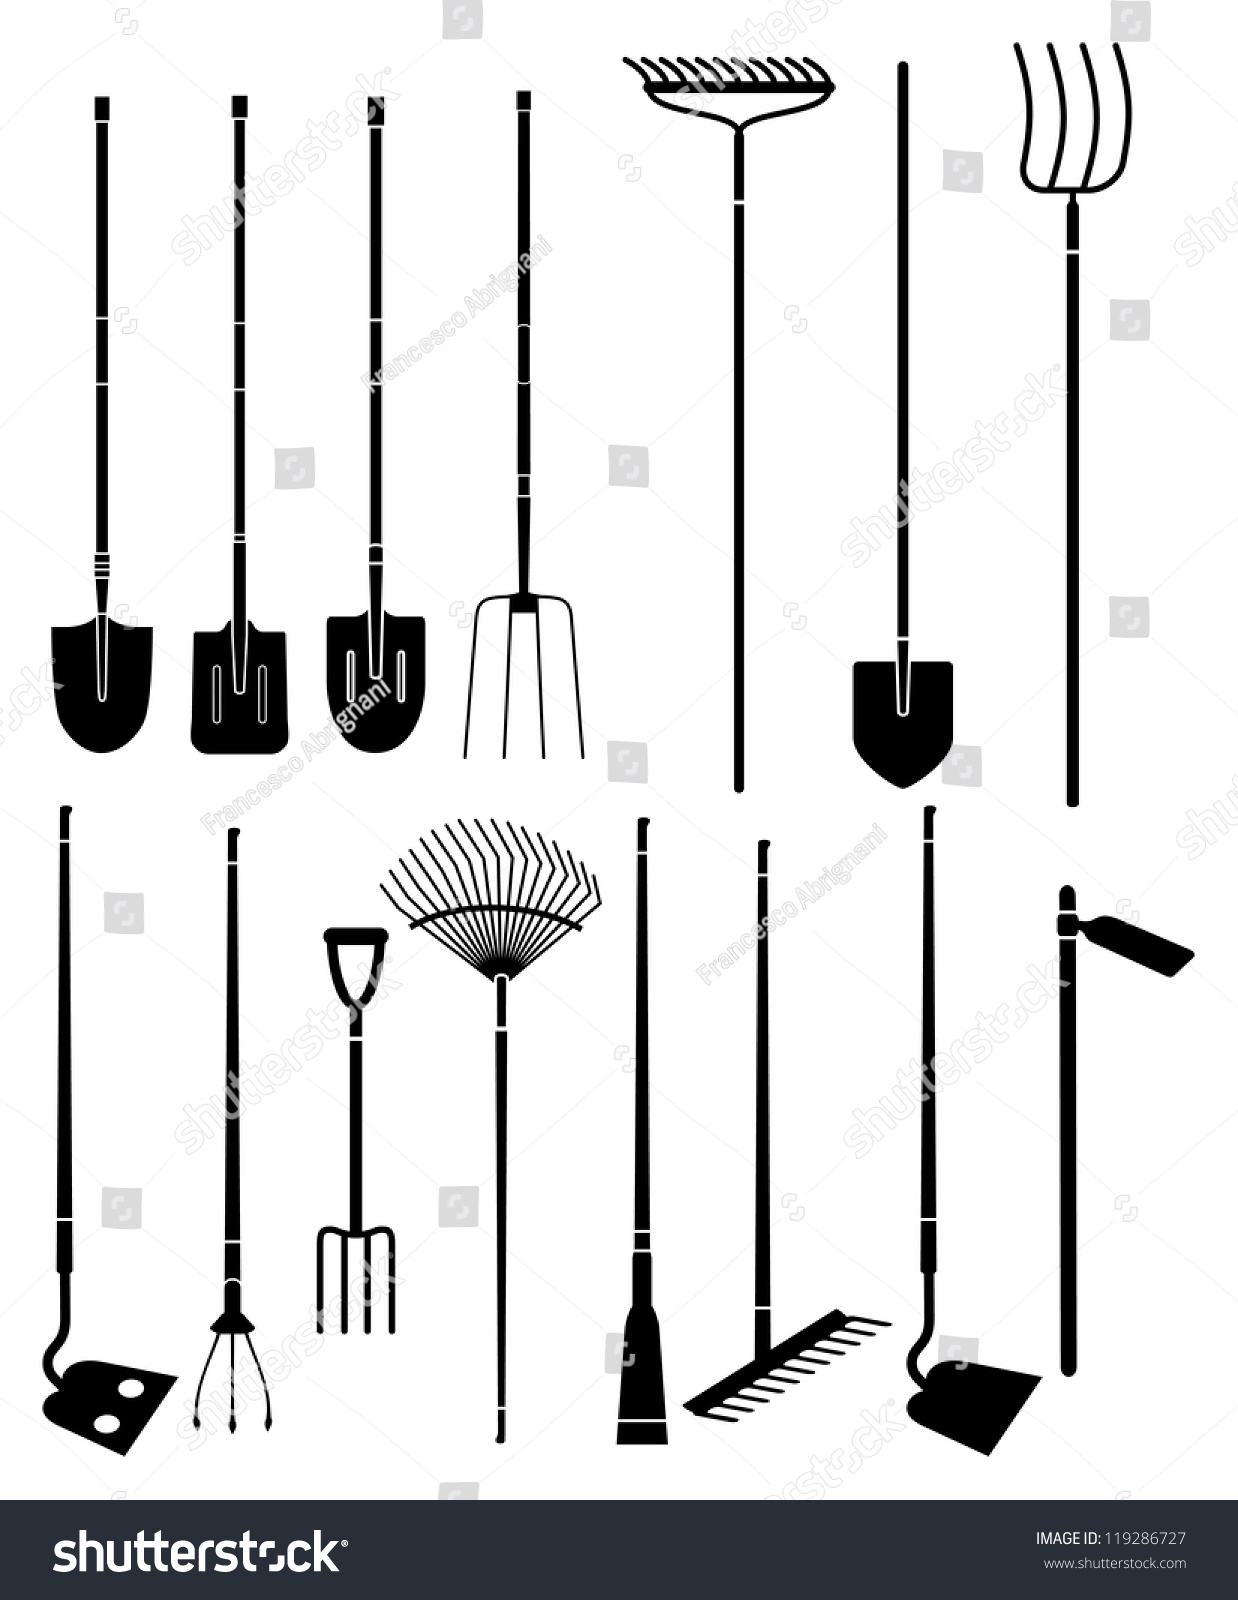 Silhouette set of long handled gardening tools stock for Gardening tools drawing with names